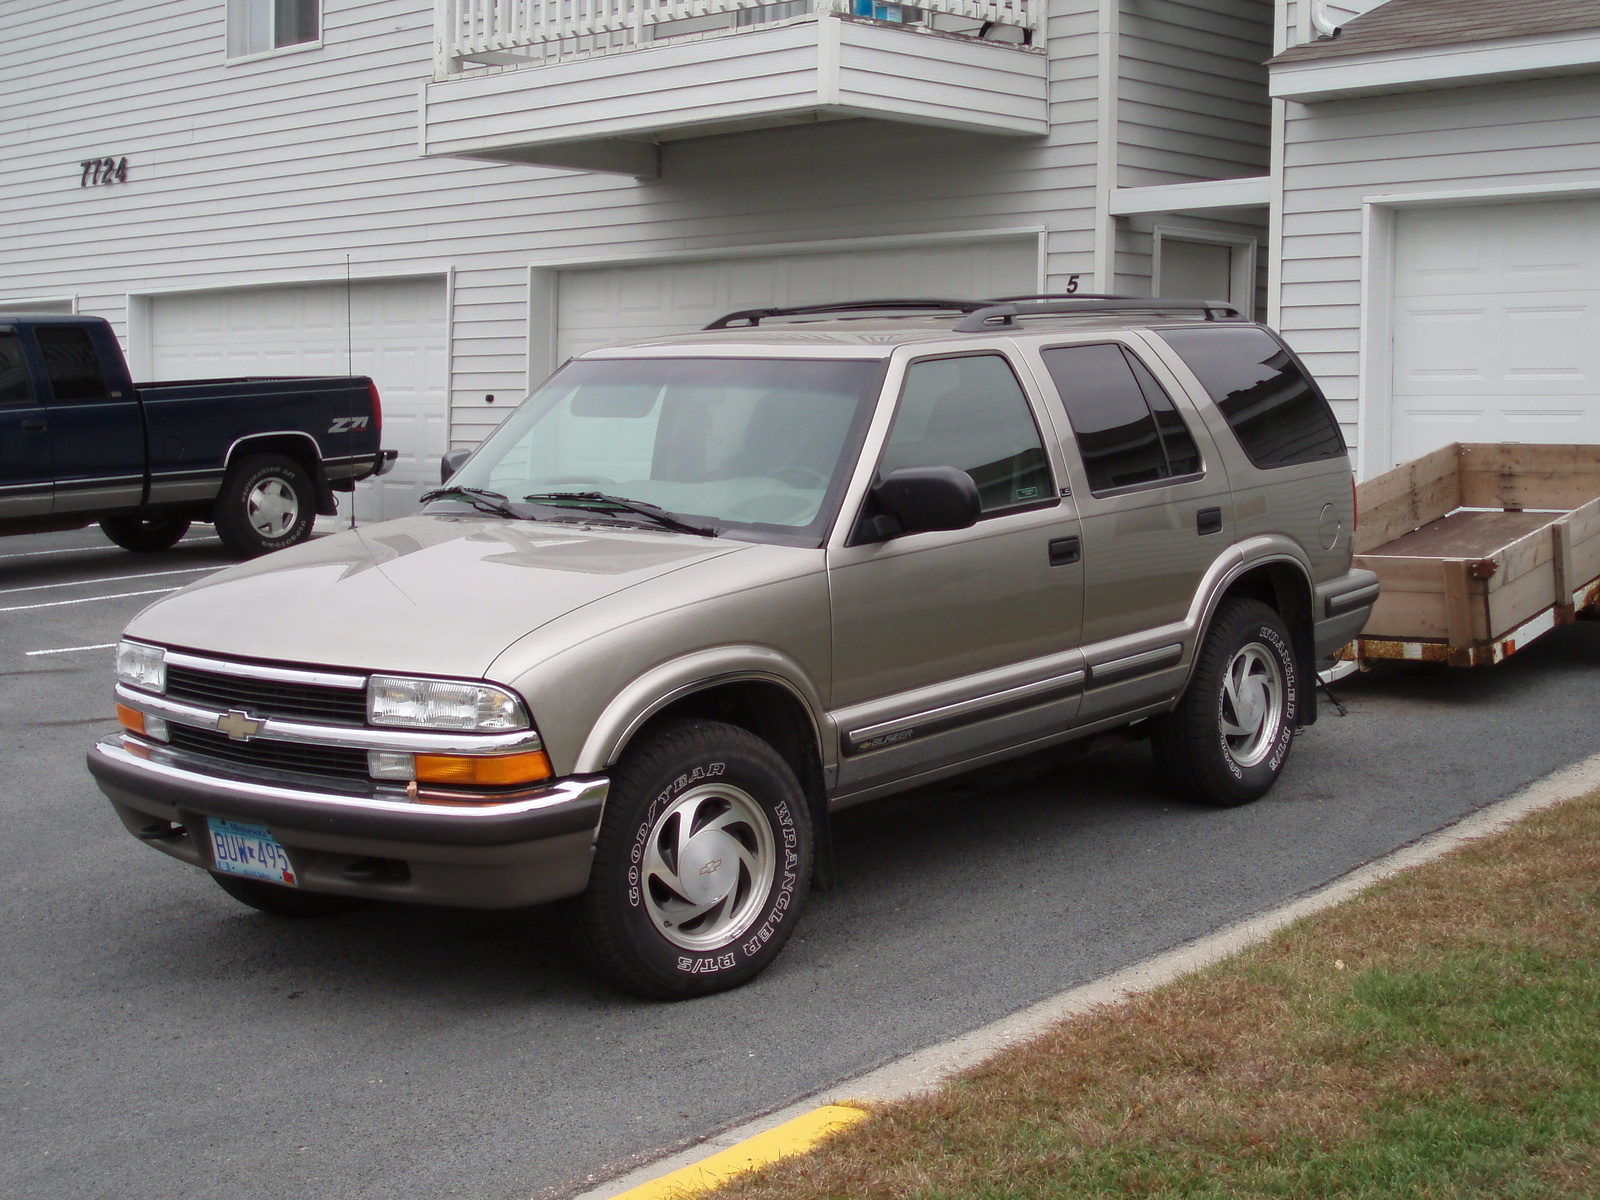 2003 chevy chevrolet blazer owners manual